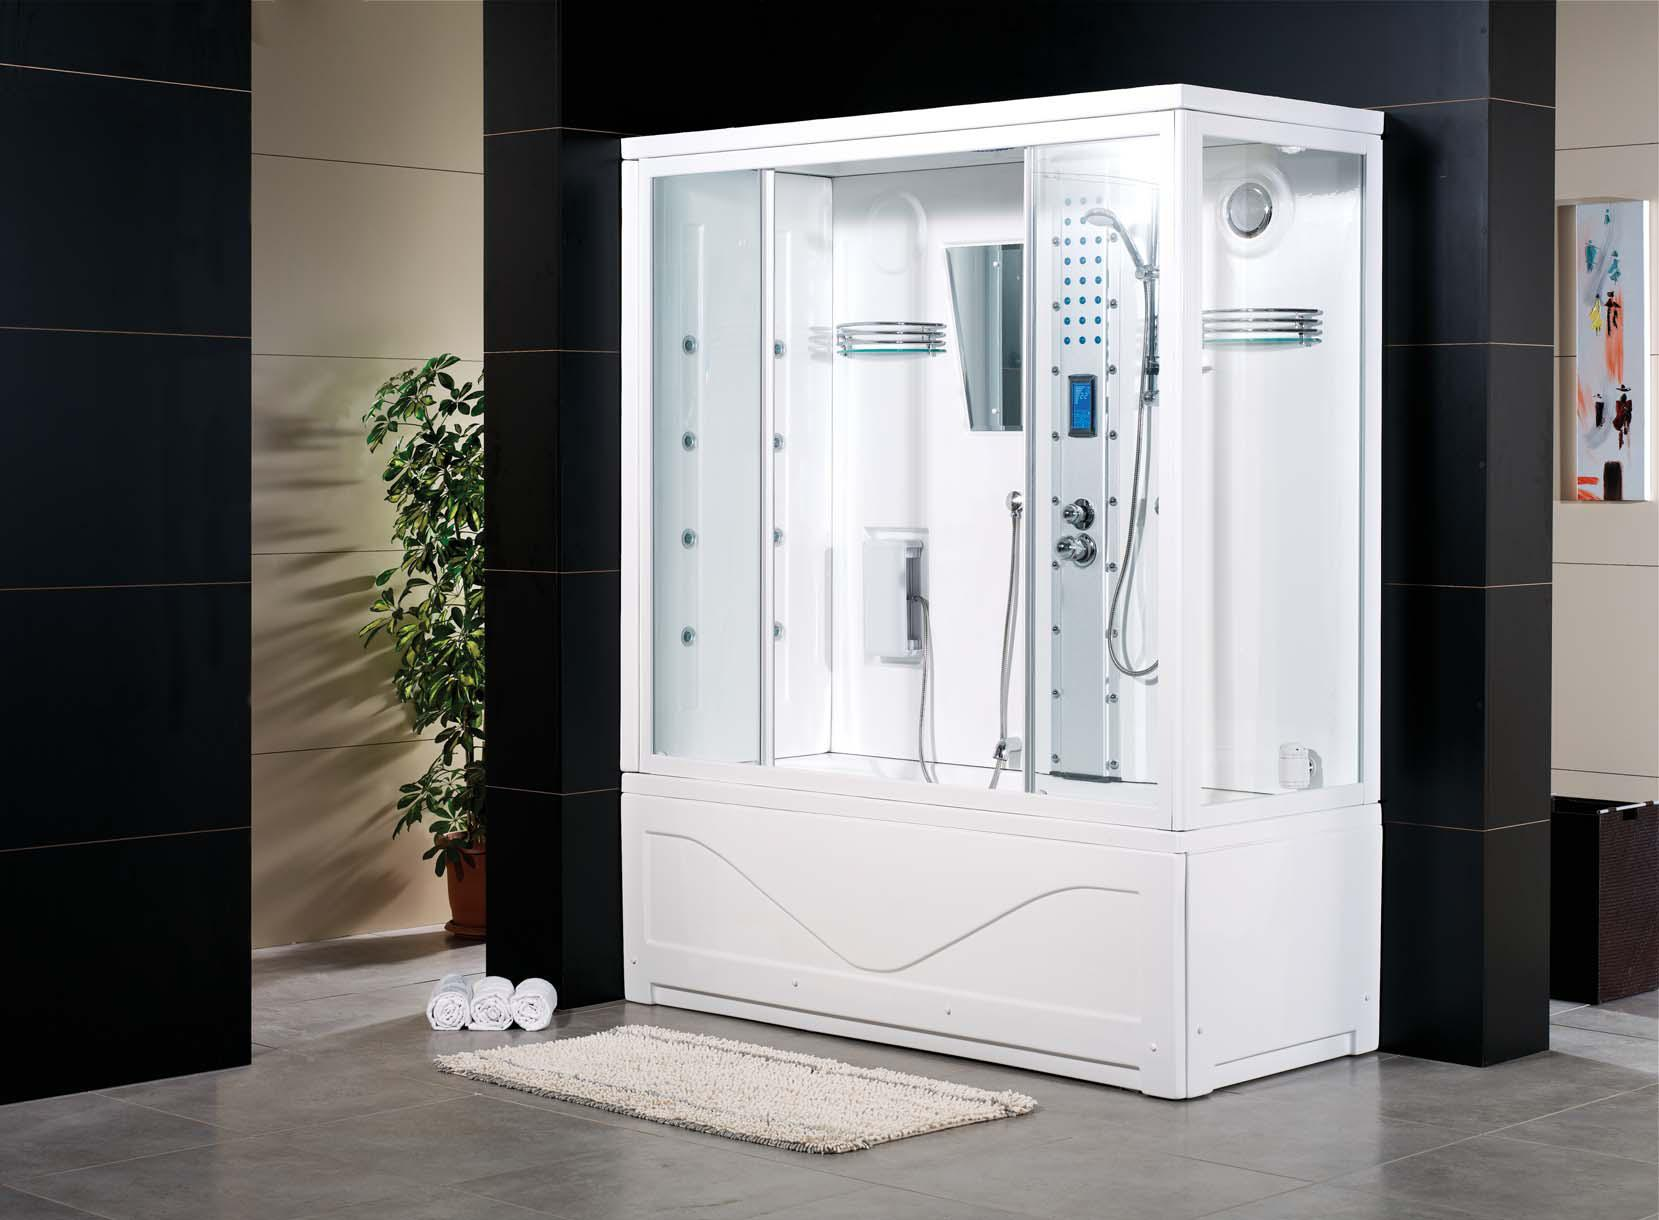 180x80 Full Compact System Shower Room - Buy Compact Shower Room Product on  Alibaba.com